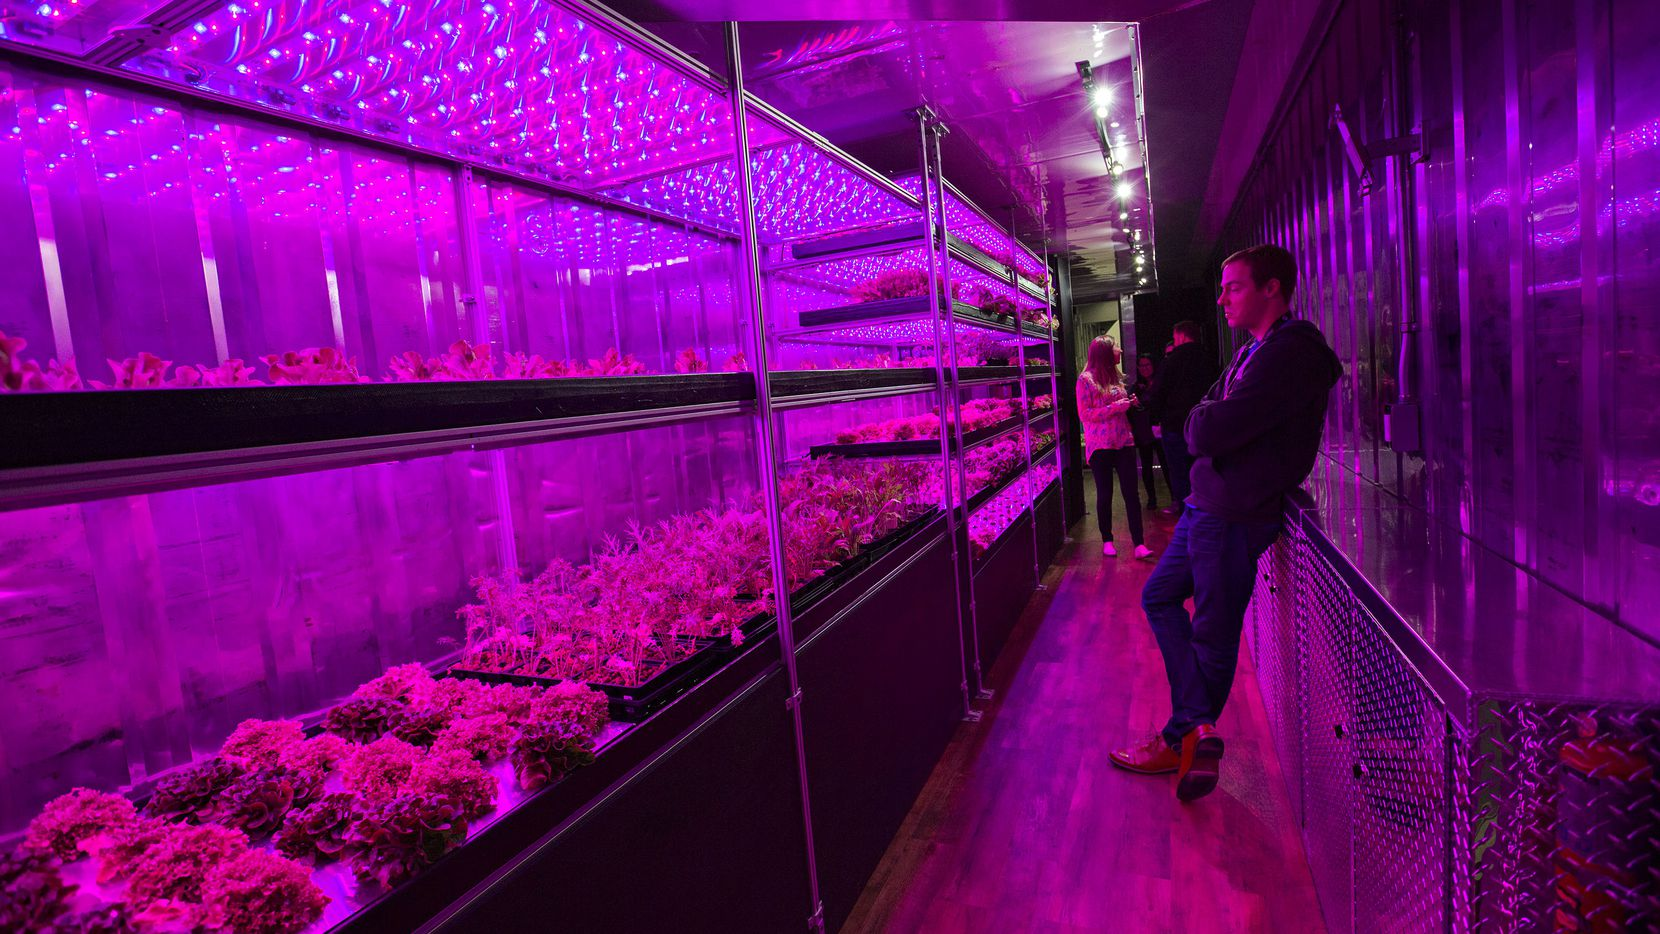 Eric Ellestad, CEO of Local Roots, stands in one of the company's indoor farms at SXSW. Local Roots, which has a mobile farm that can grow food all year round and in any climate, was on display during a trade show at the Austin Convention Center for SXSW.